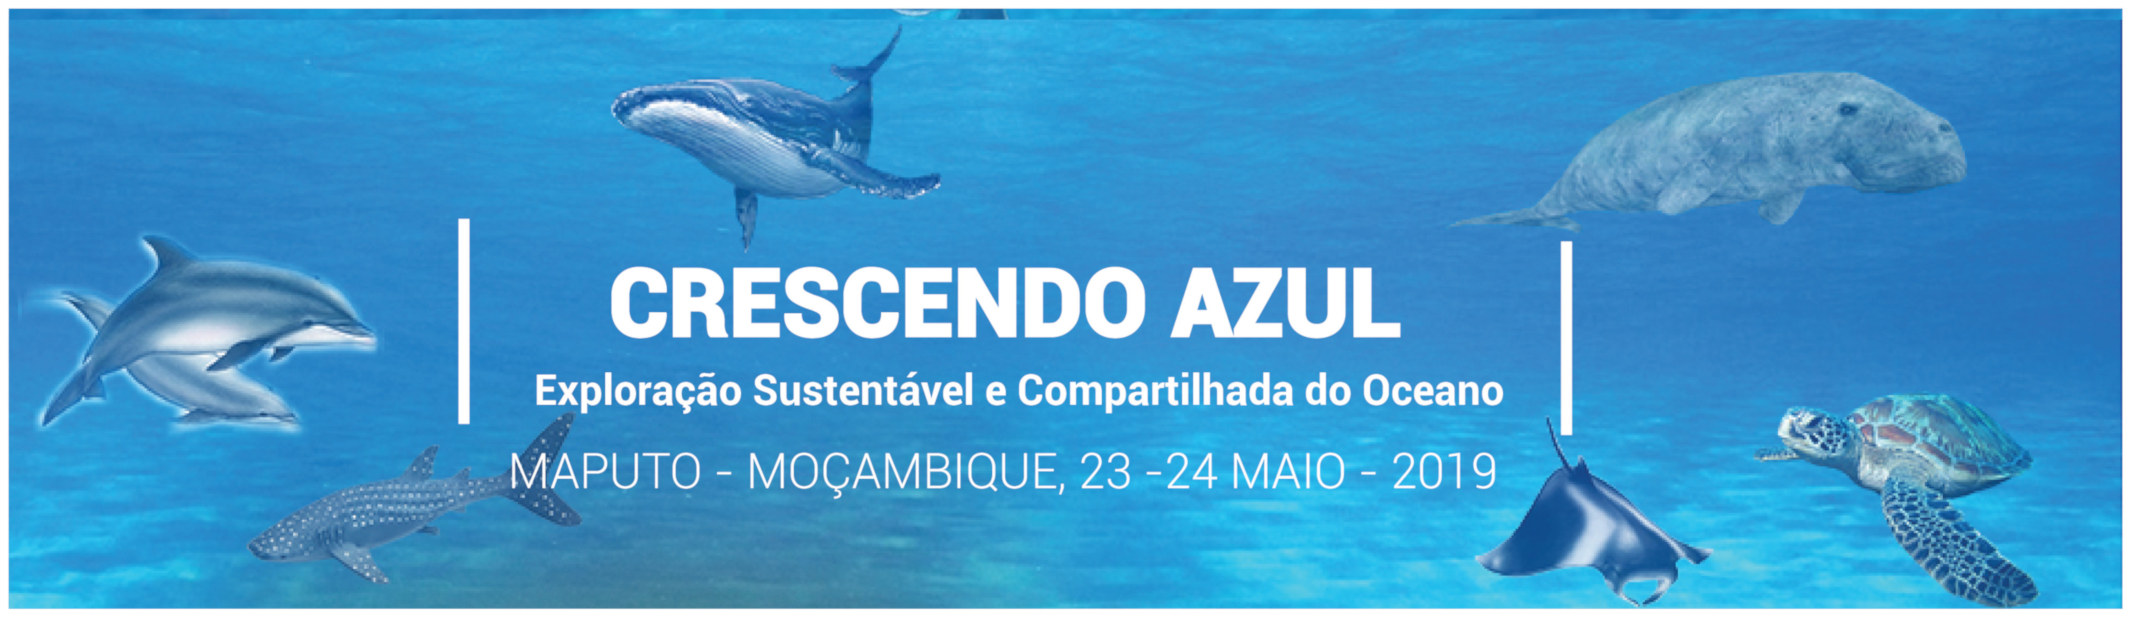 Registo no Evento Crescendo Azul